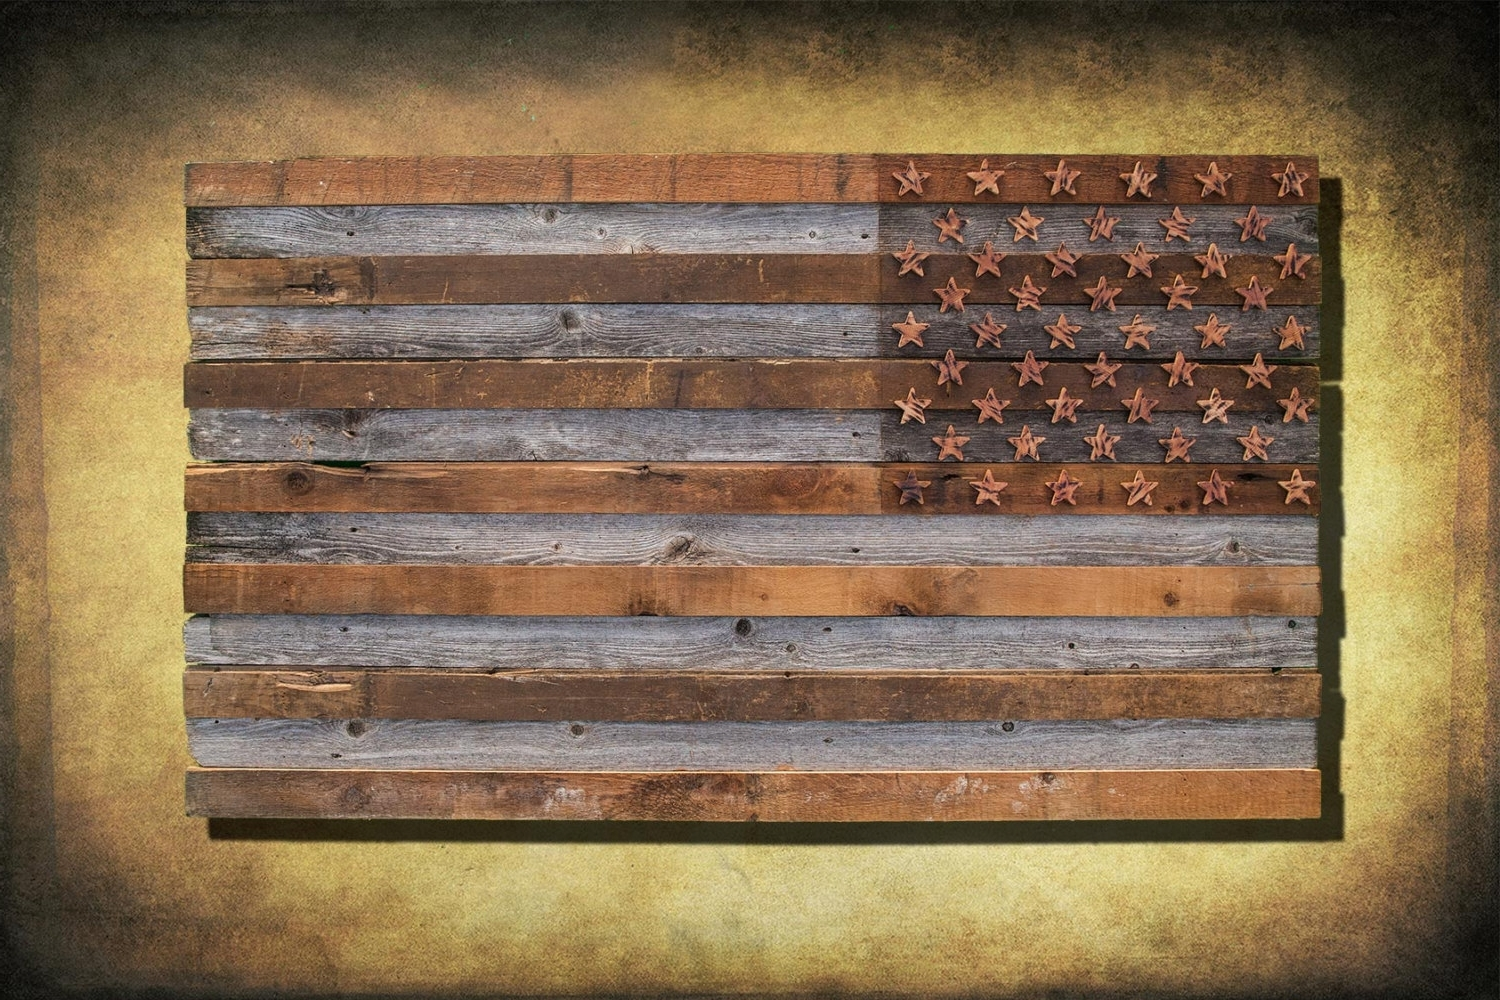 Barnwood American Flag, 100 Year Old Wood, One Of A Kind, 3D, Wooden Intended For Favorite Vintage American Flag Wall Art (Gallery 2 of 20)